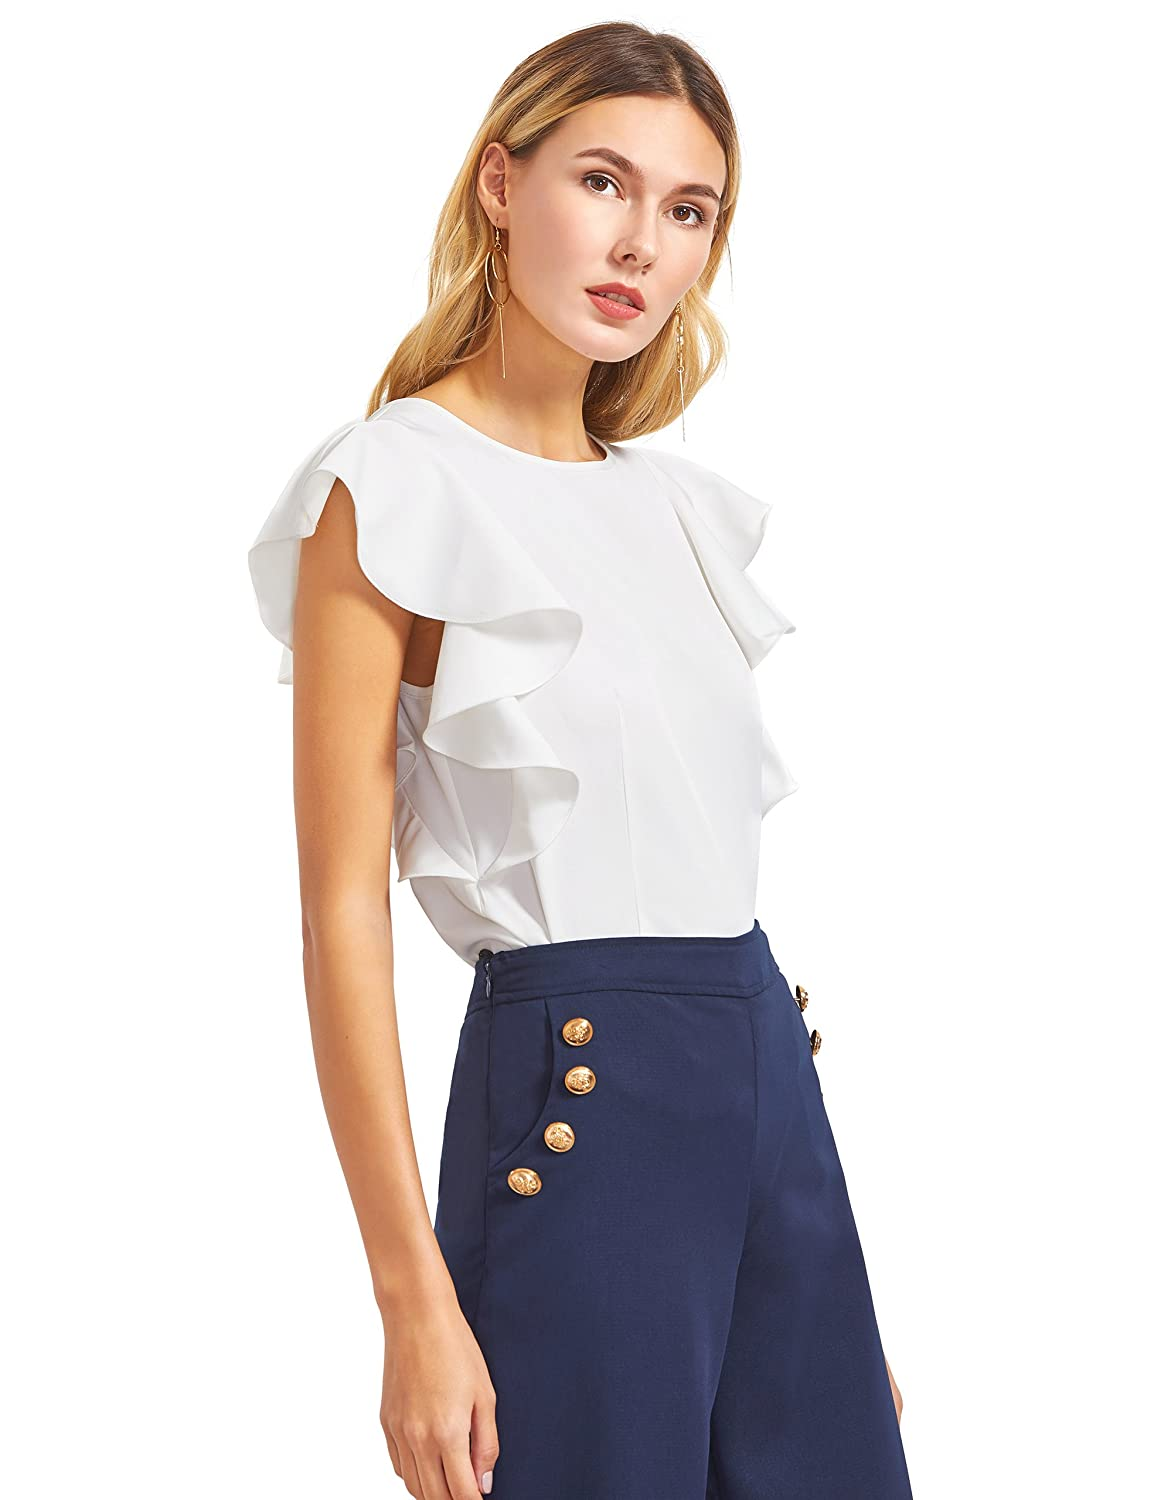 MAKEMECHIC Women s Solid Ruffle Sleeve Summer Tops and Blouses at Amazon Women s  Clothing store  ae512dee1